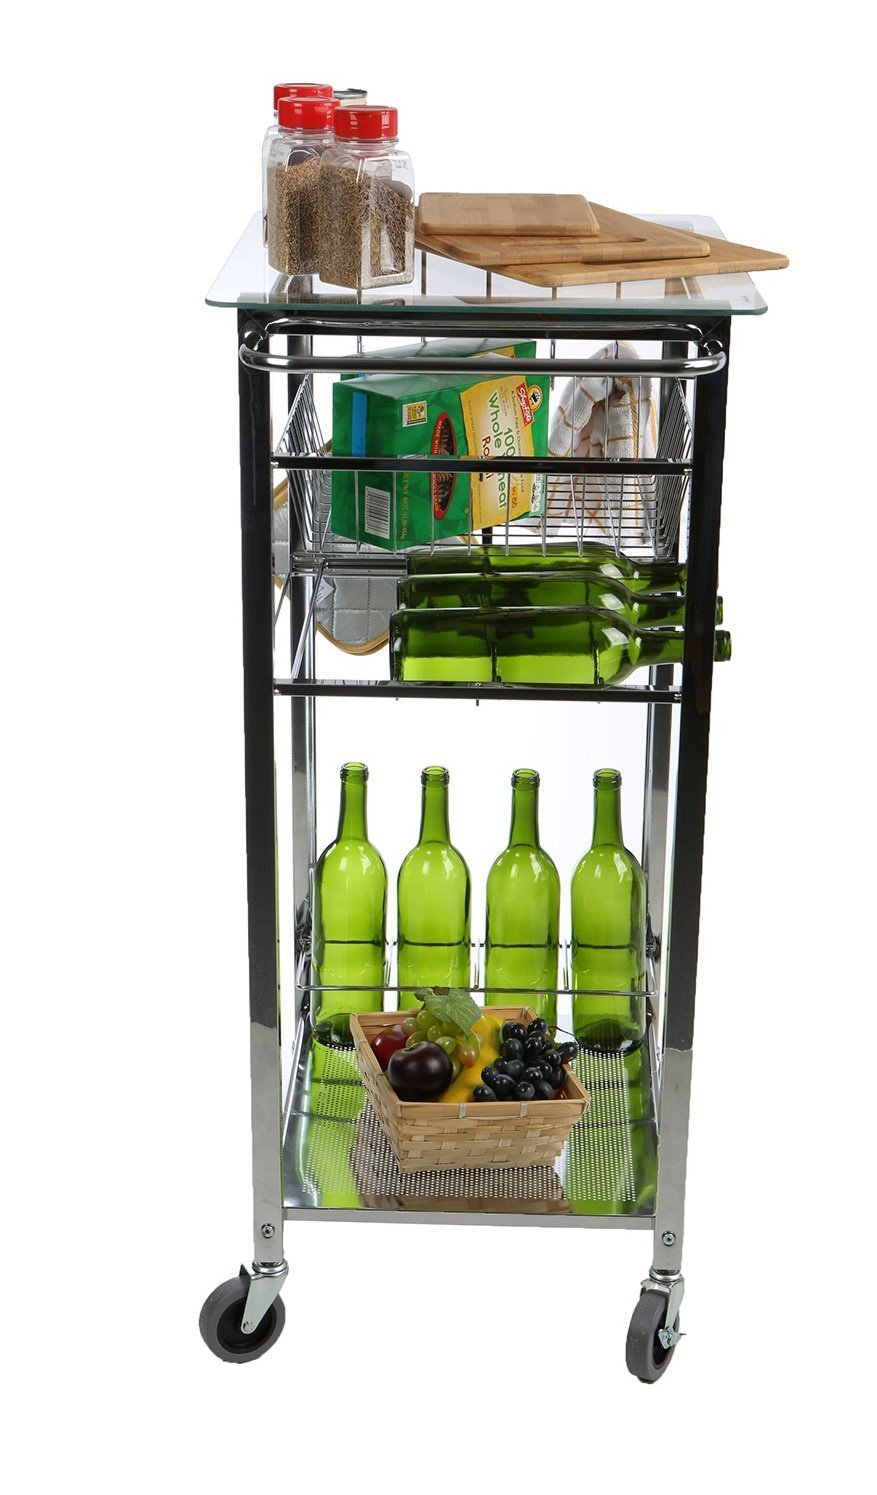 Related mind reader glass top mobile kitchen cart with wine bottle holder wine rack towel holder perfect kitchen island for cooking utensils kitchen appliances and food storage silver